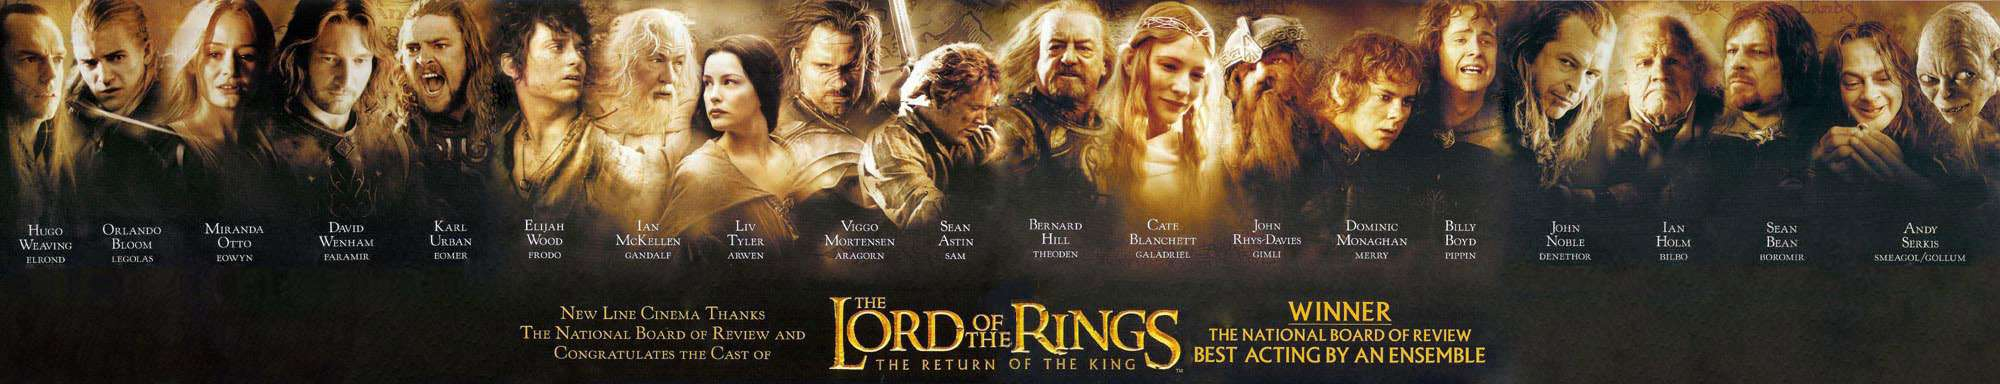 All The Characters Names In Lord Of The Rings